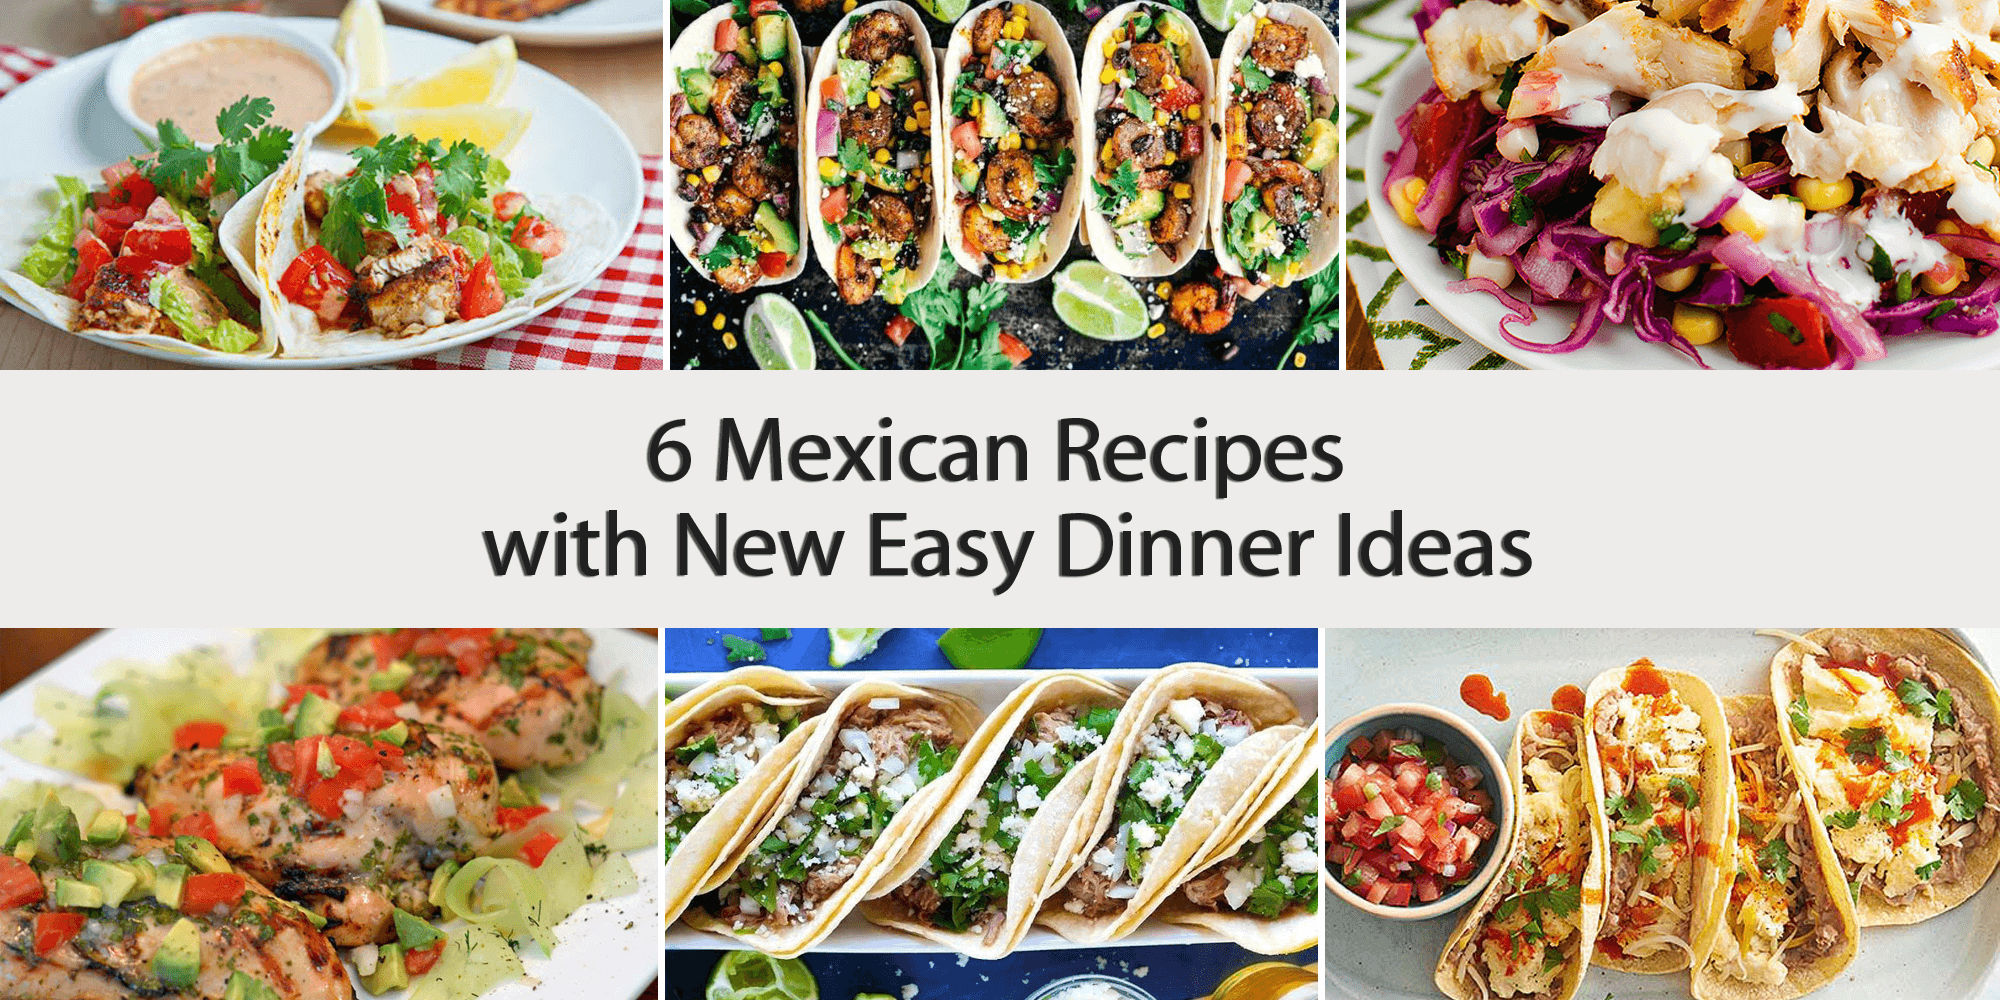 6 new easy dinner ideas of mexican